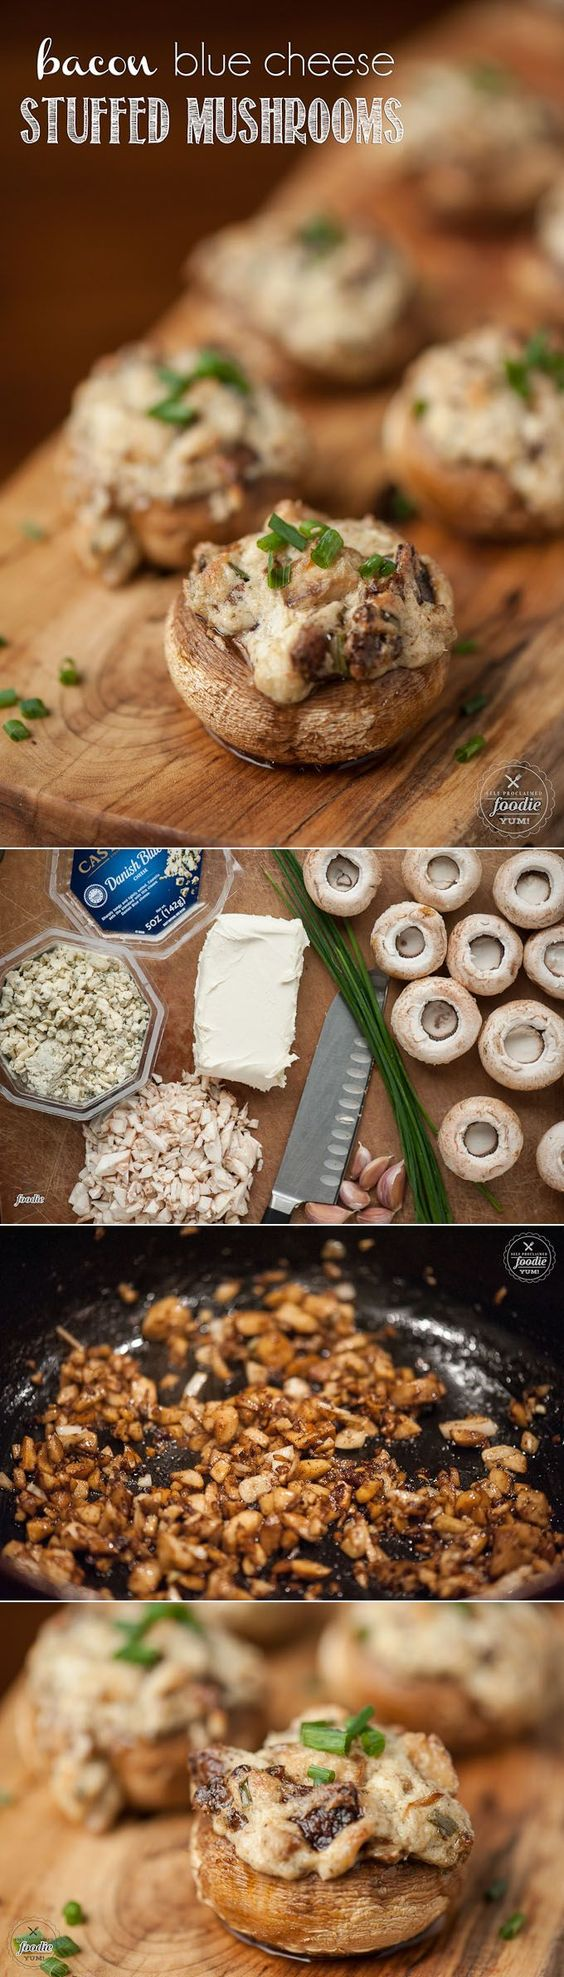 These Bacon Blue Cheese Stuffed Mushrooms are an incredibly rich and decadent appetizer that are the perfect party finger food everyone will love.